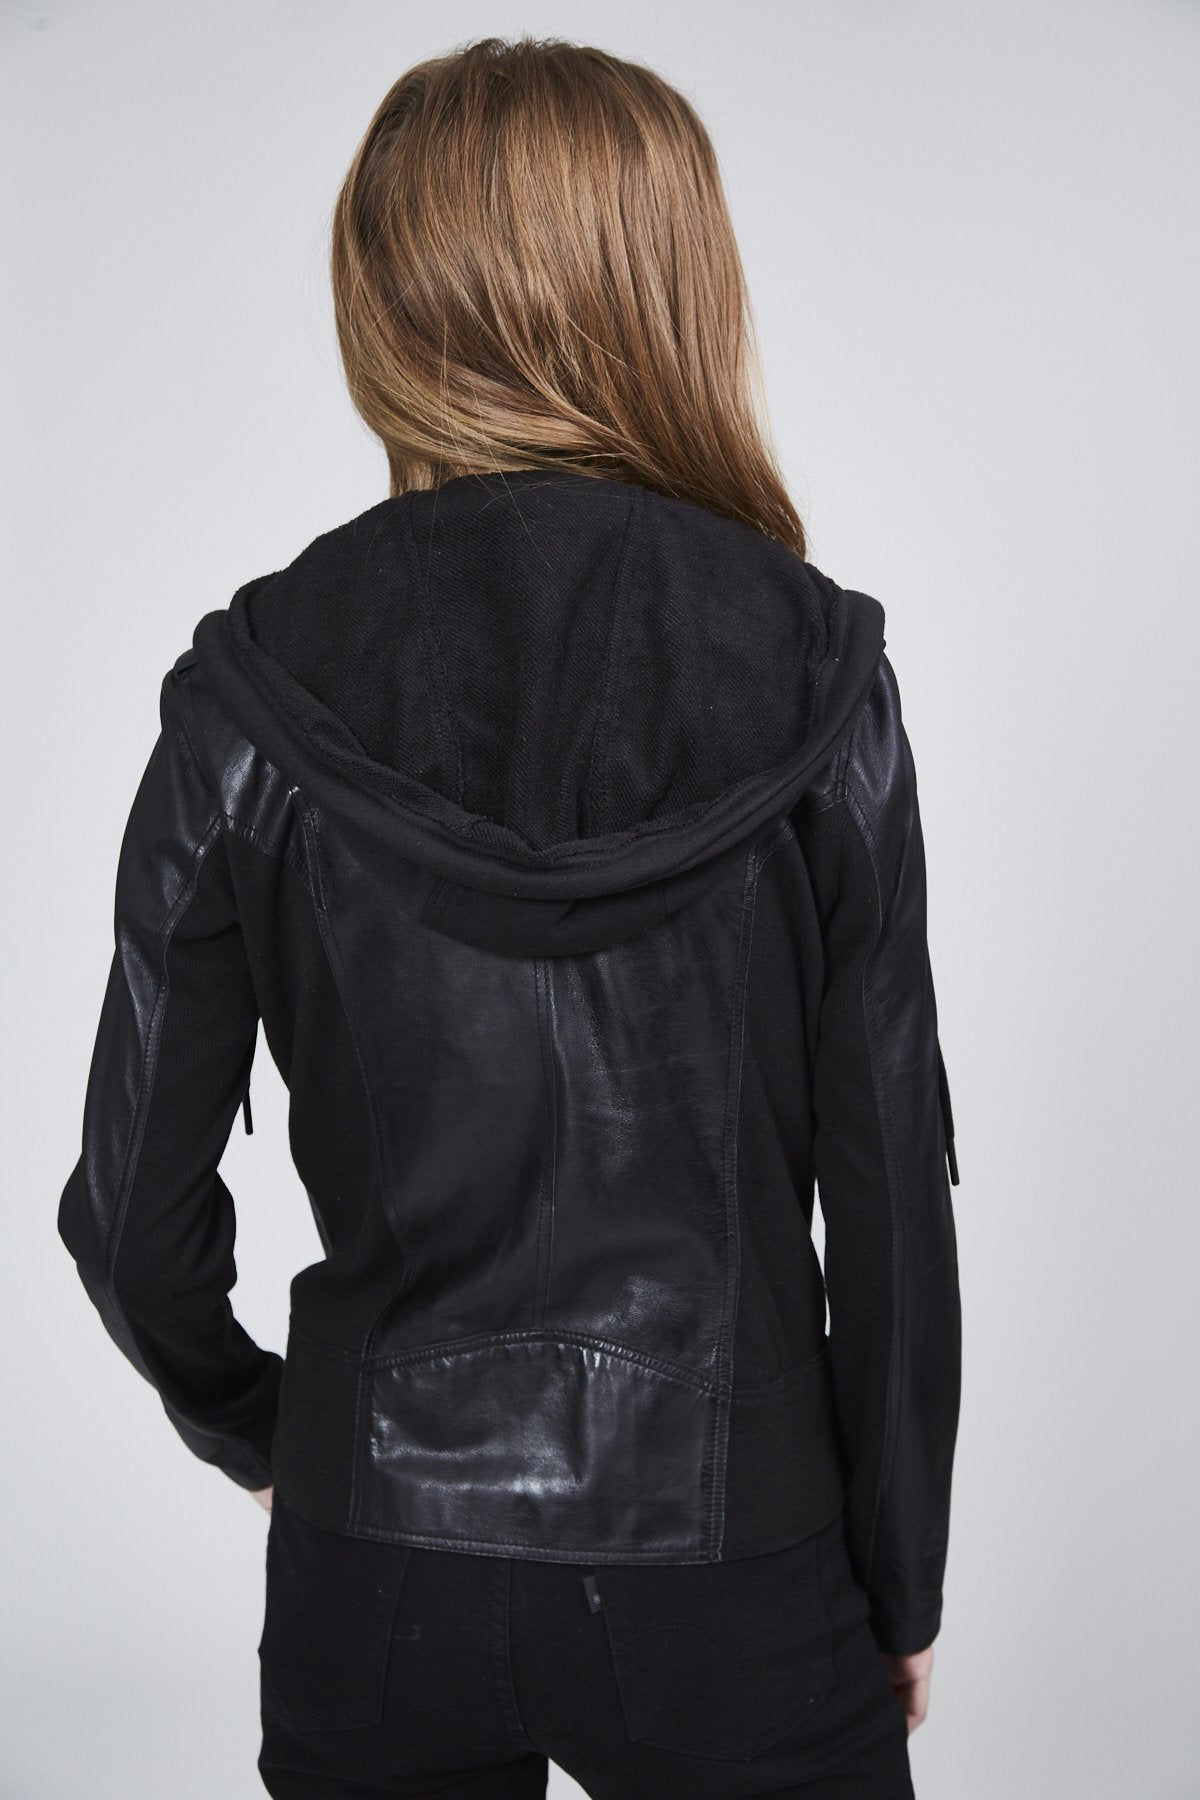 Hannah - Burnished Leather